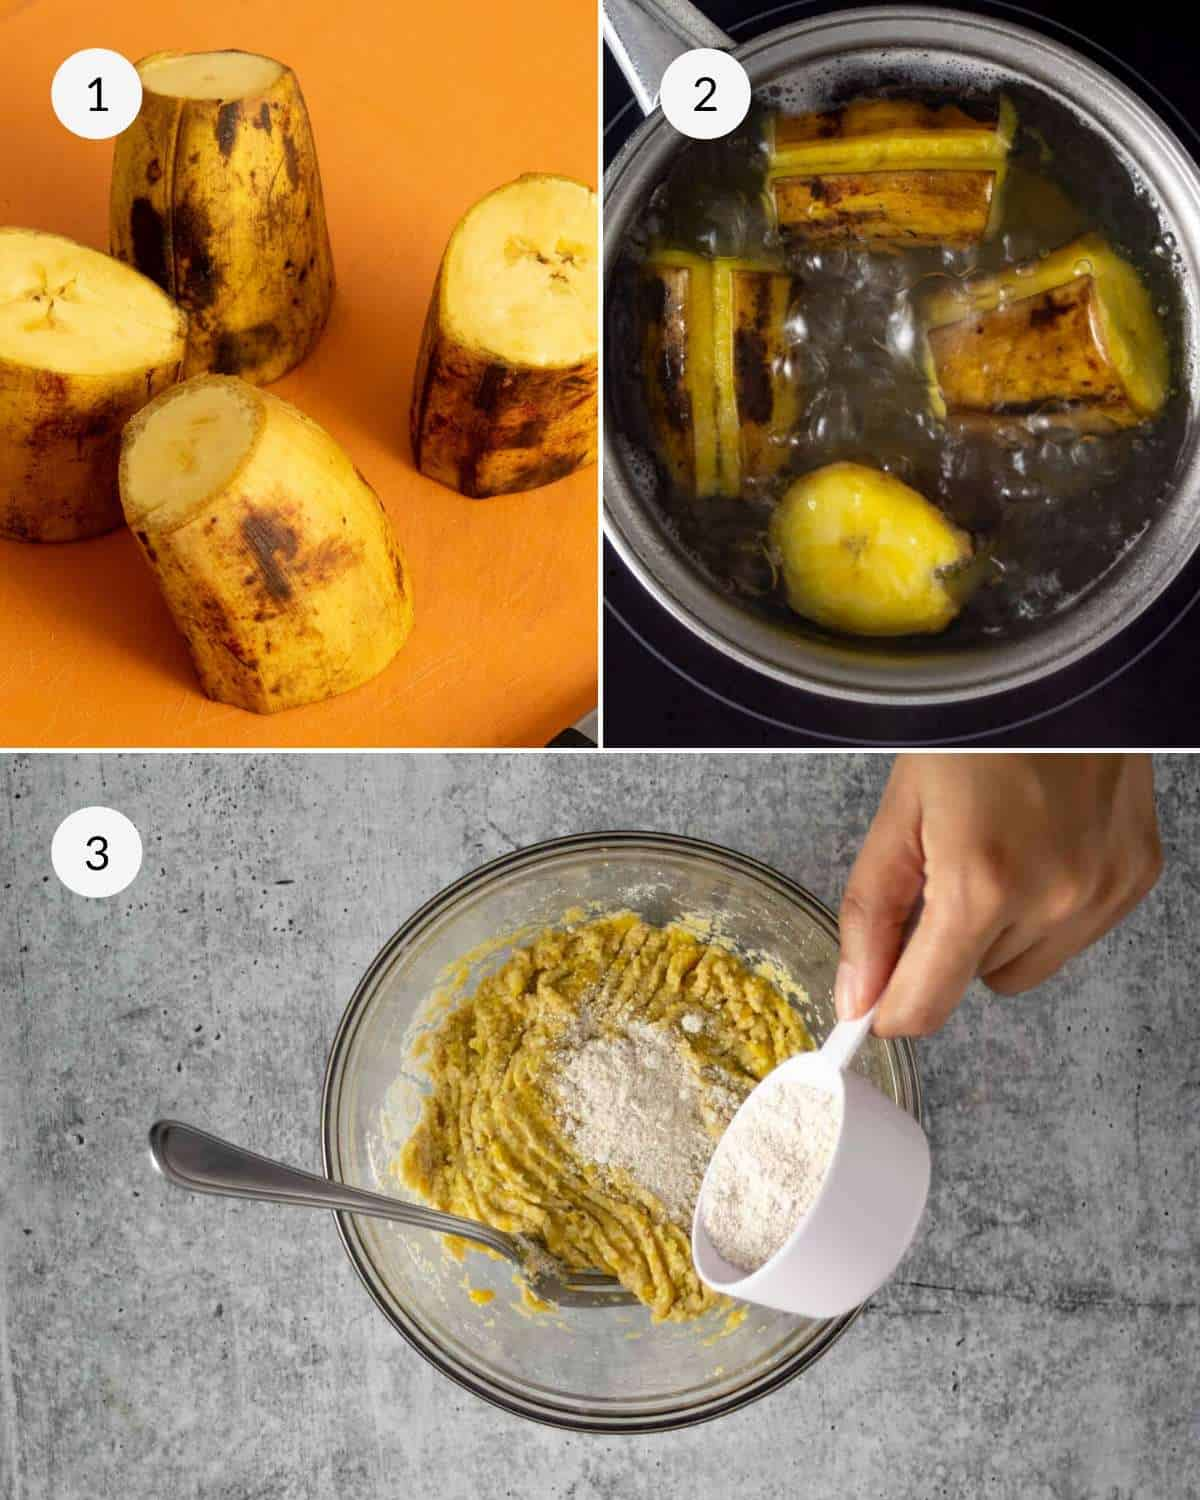 Step by step photos showing how to cut and boil the plantains and then next mix the dough